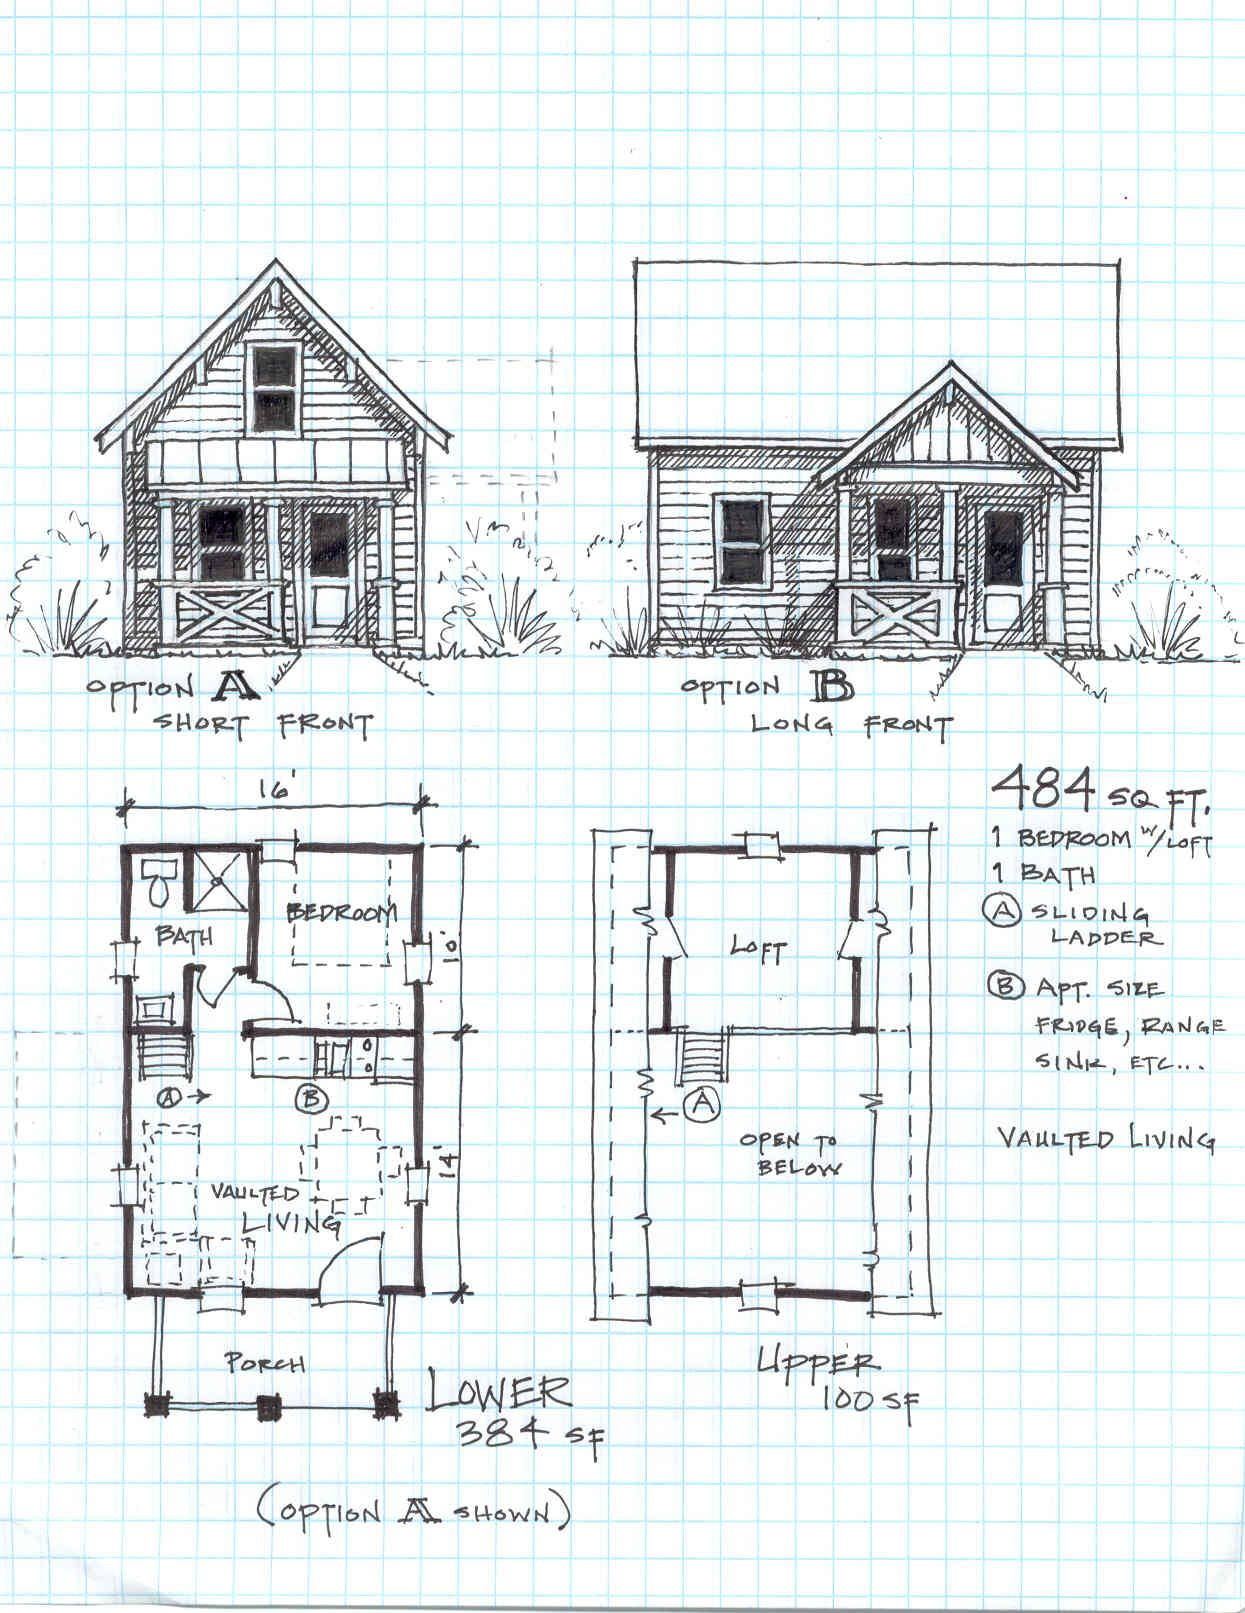 i adore this floor plan!!! i really want to live in a small open